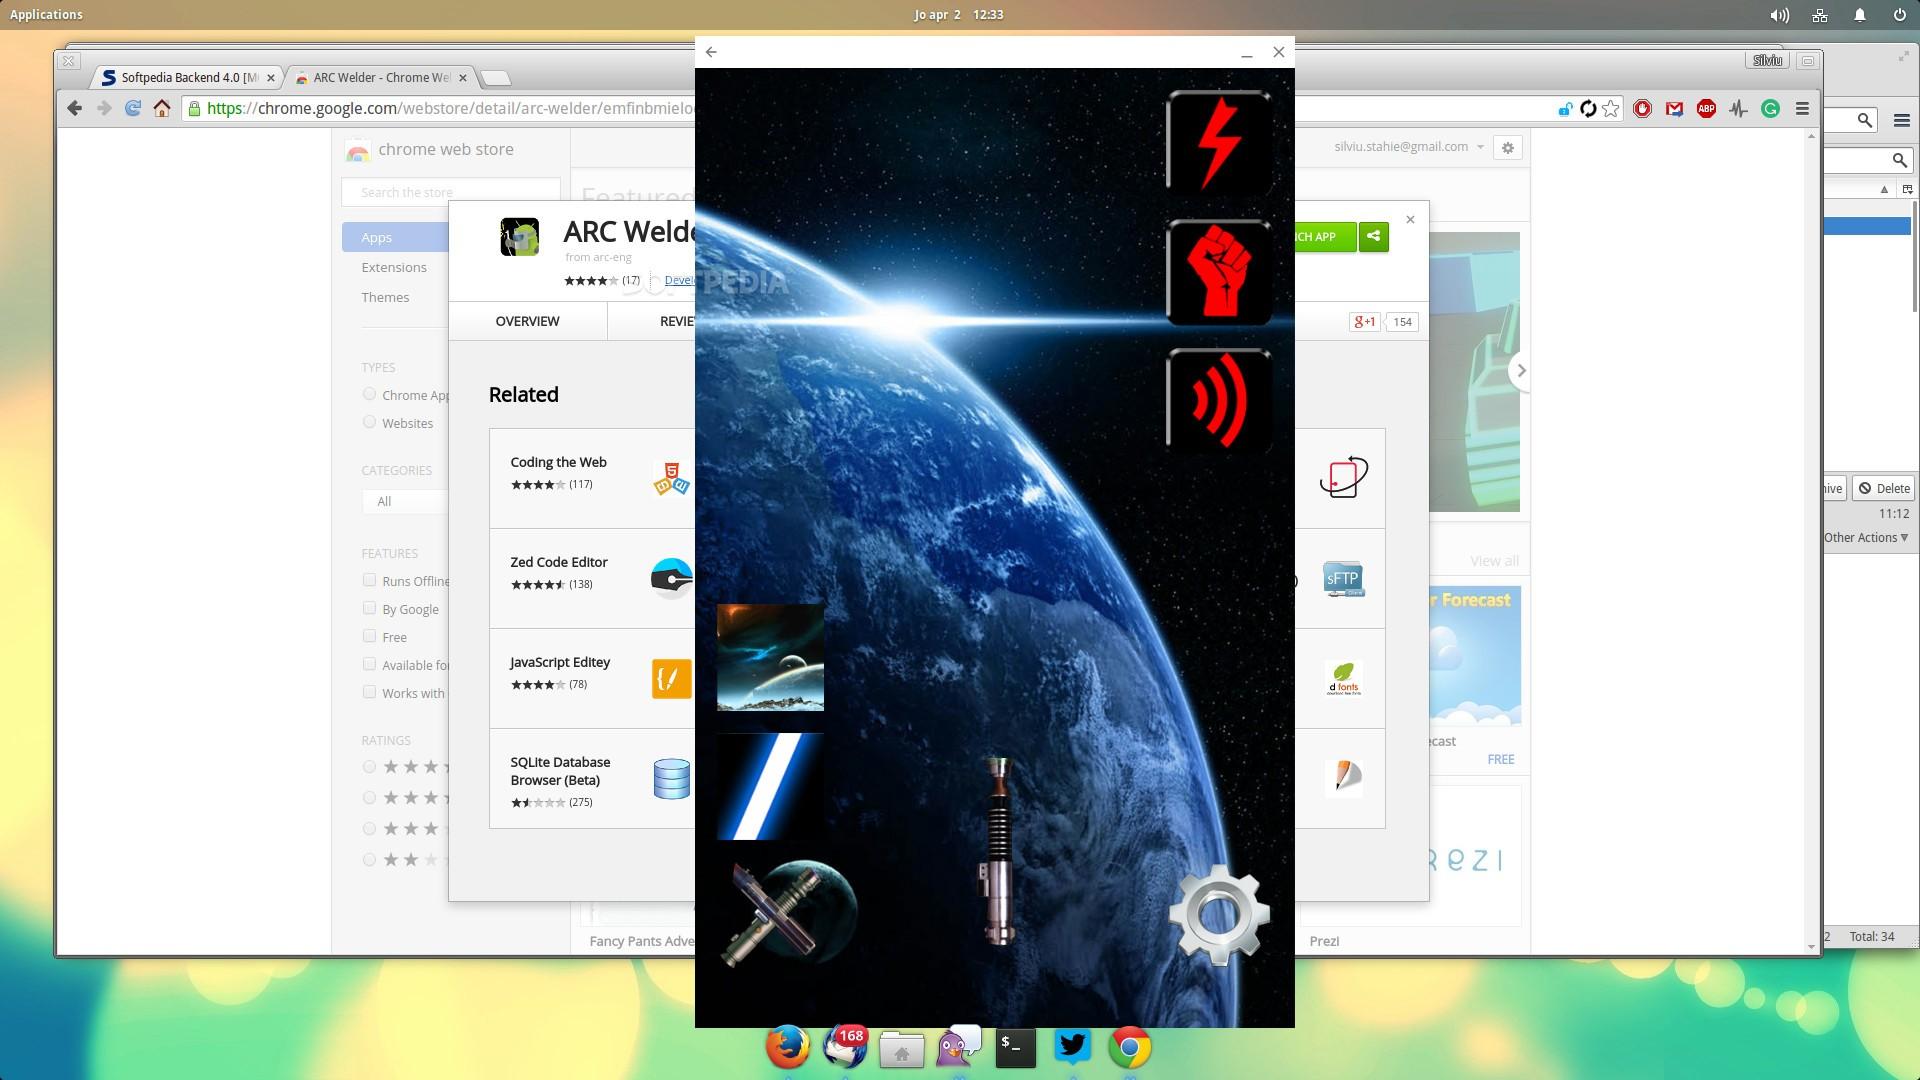 How To Install And Run Android Apps In A Linux Os